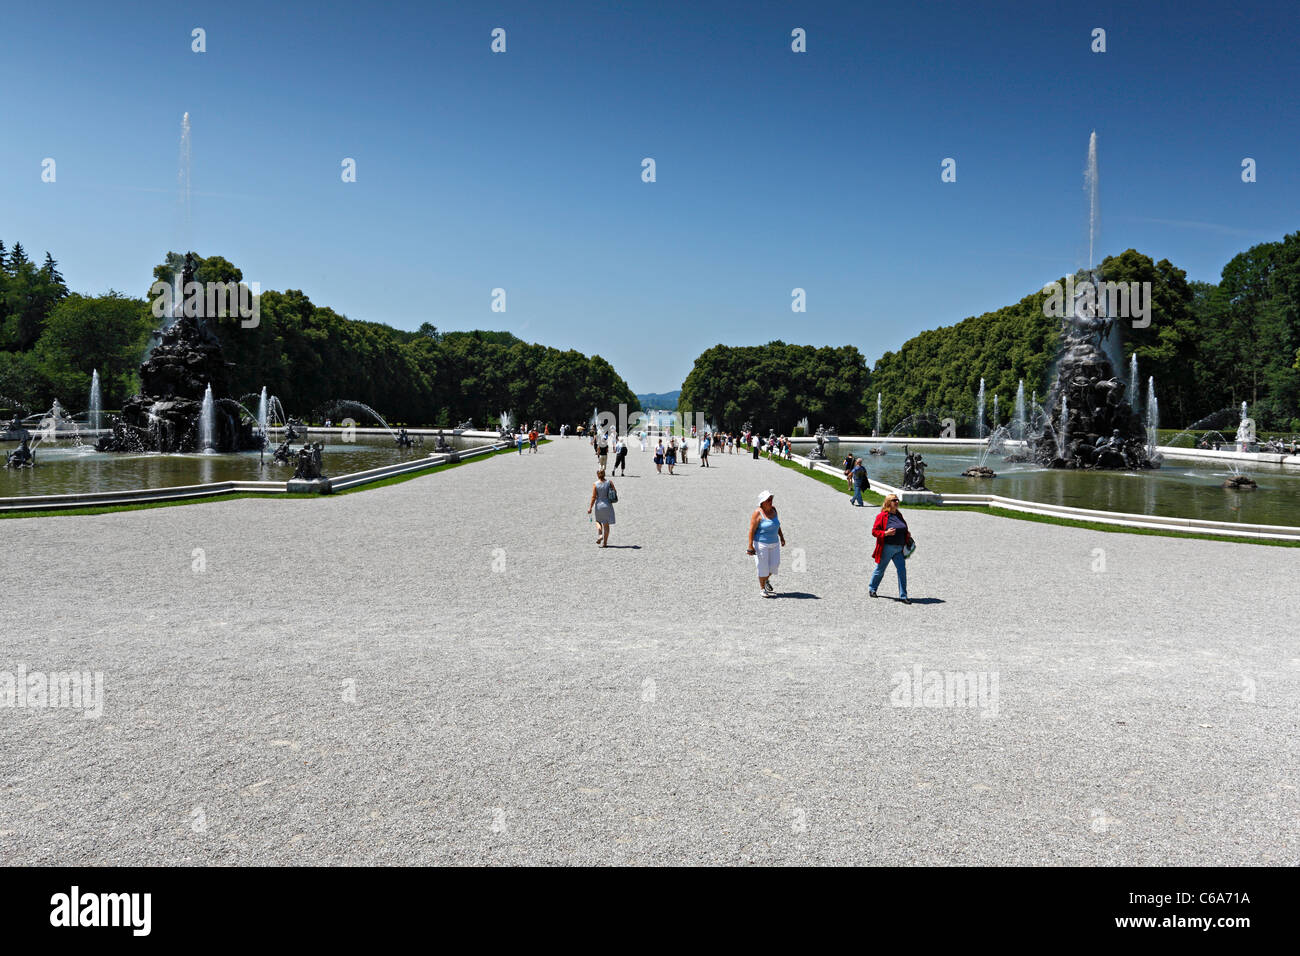 Fortuna and Fama Fountains with view to the Chiemsee, Herreninsel Upper Bavaria Germany - Stock Image